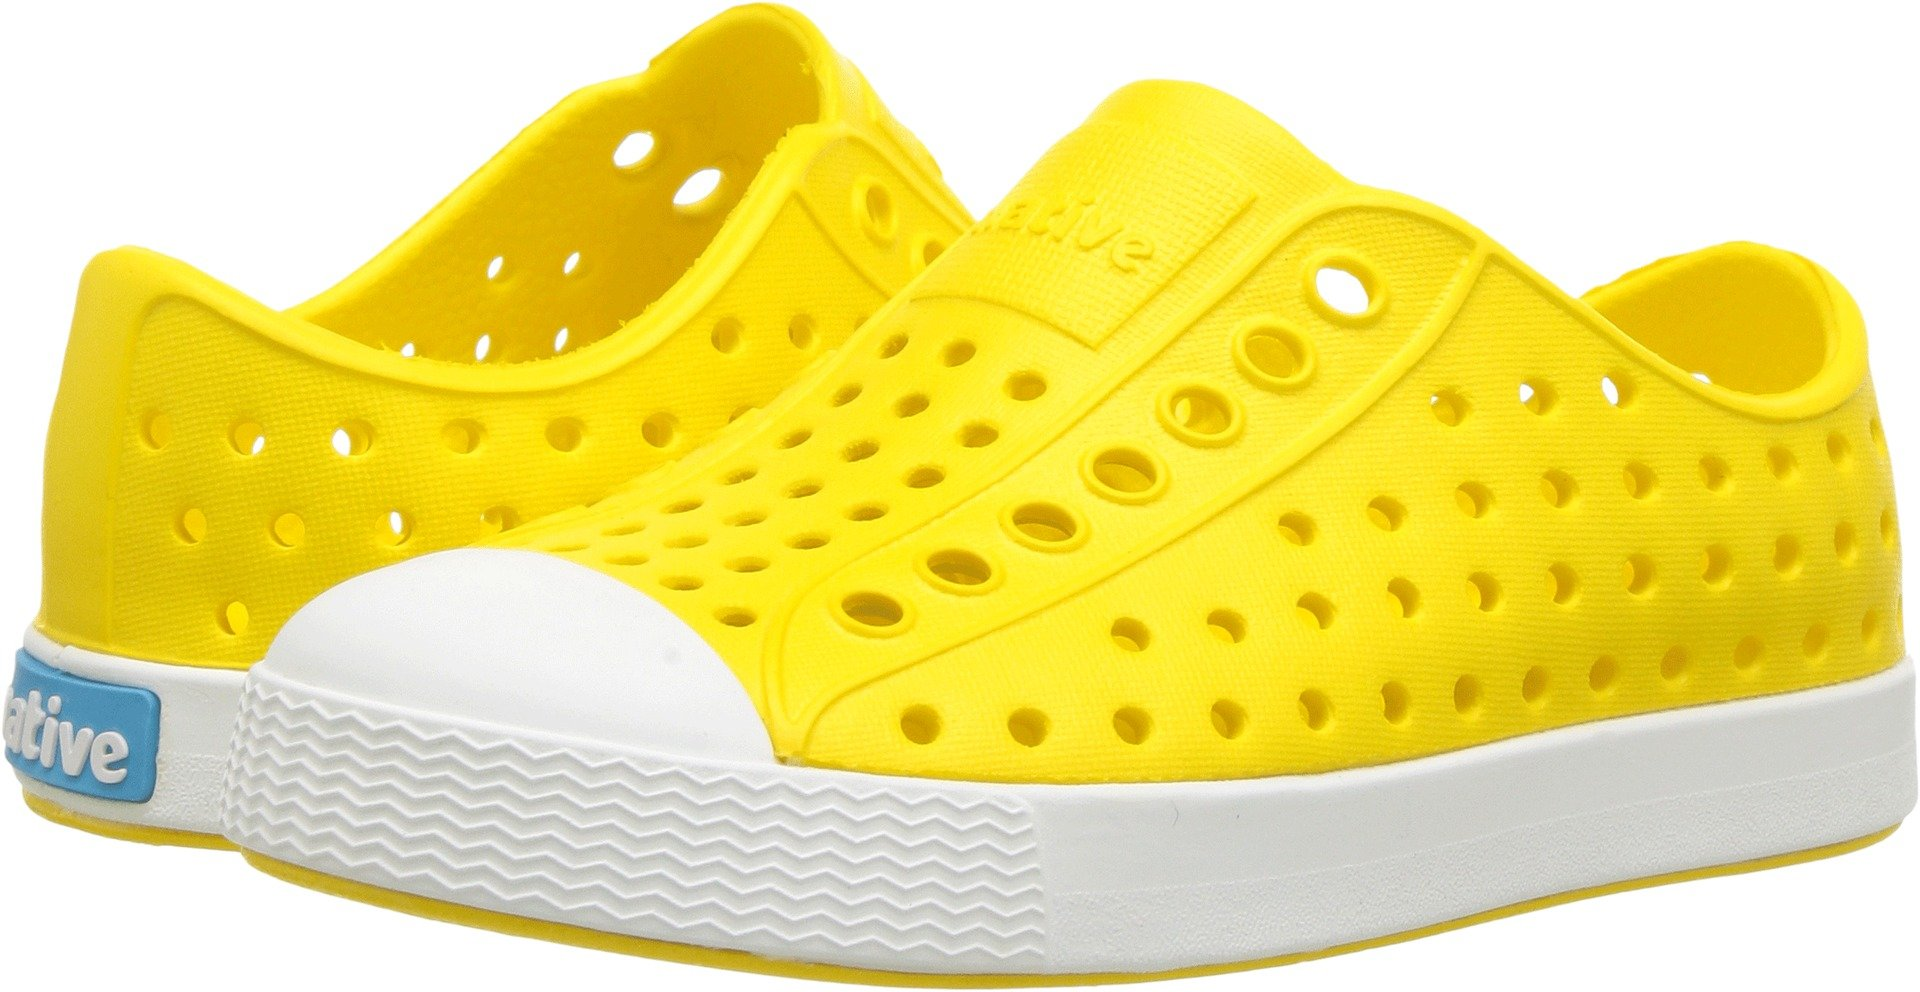 Native unisex-baby Jefferson Child Water Proof Shoes, Crayon Yellow/Shell White, 7 Medium US Toddler by Native Shoes